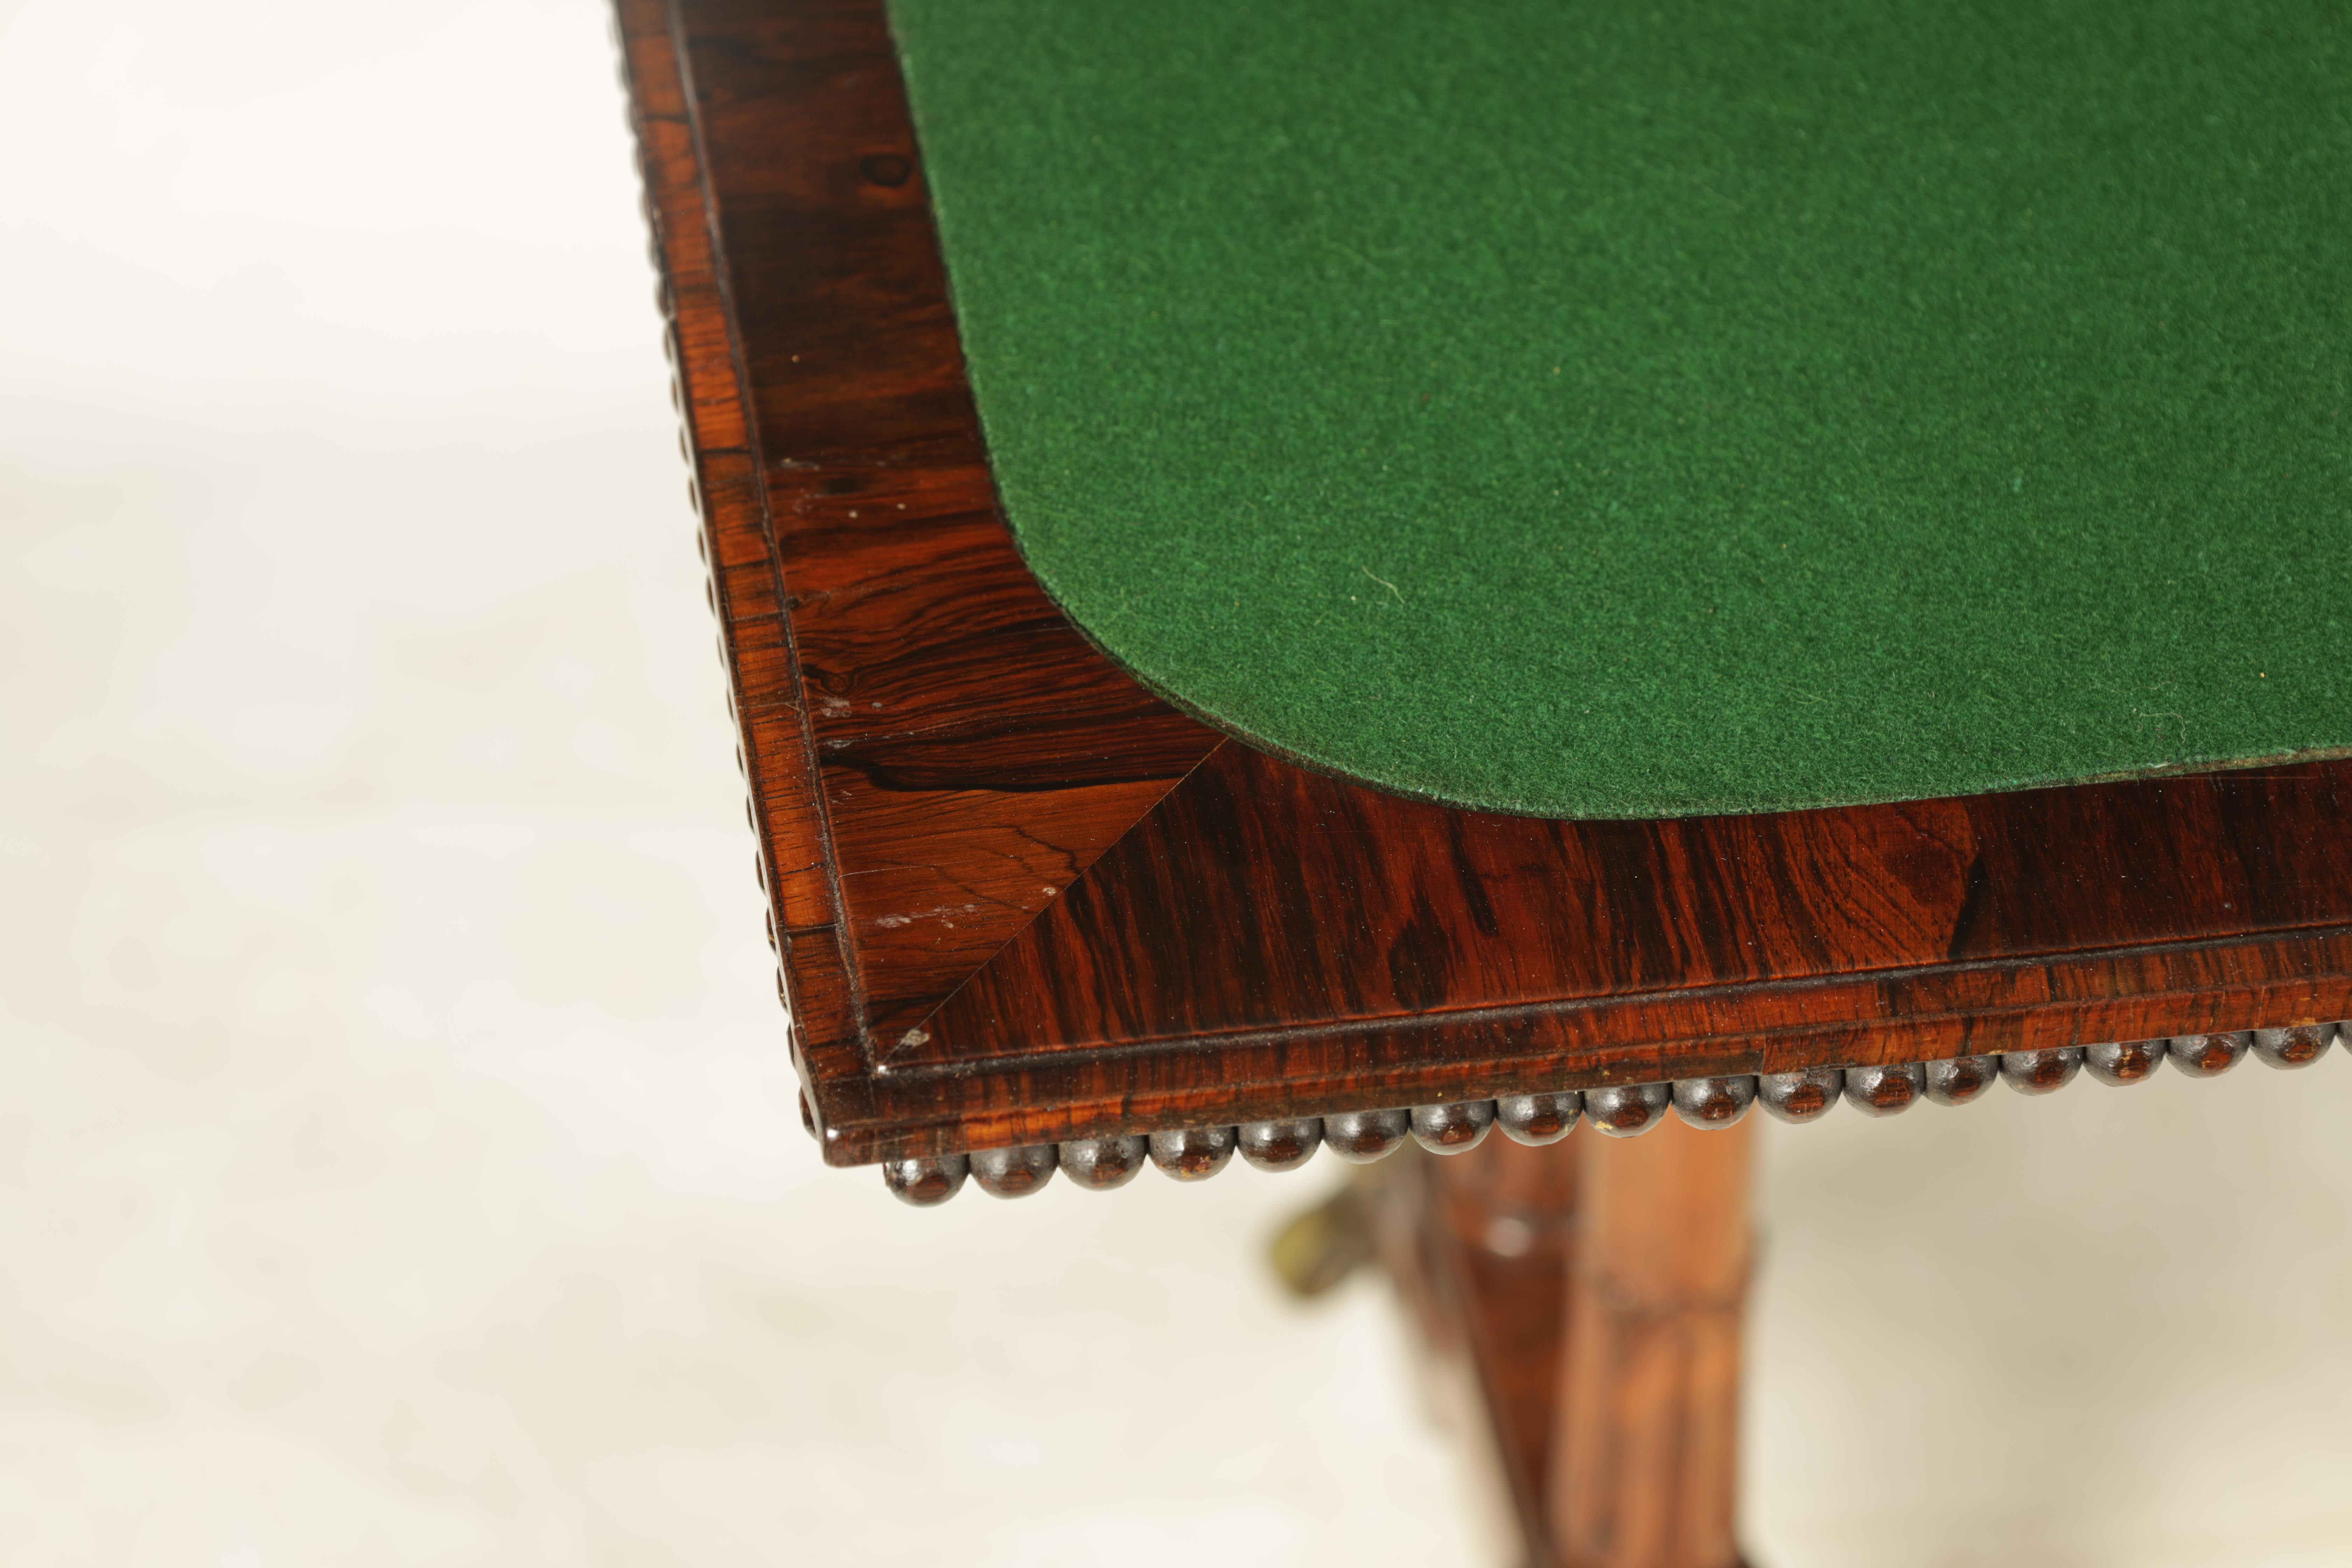 A REGENCY FIGURED ROSEWOOD CARD TABLE IN THE MANNER OF T & G SEDDON with revolving top revealing a - Image 7 of 9